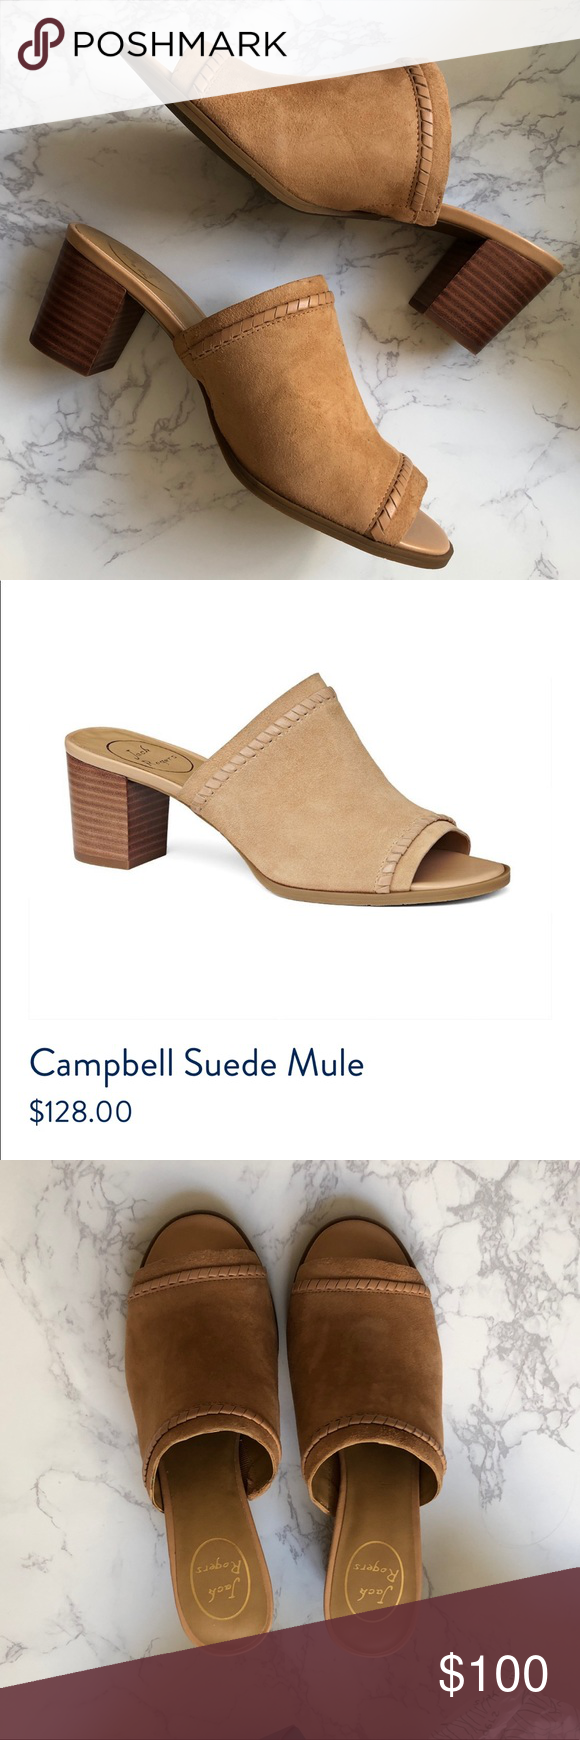 52cf1e8be49 NWT Jack Rogers Campbell Suede Mules Brand new